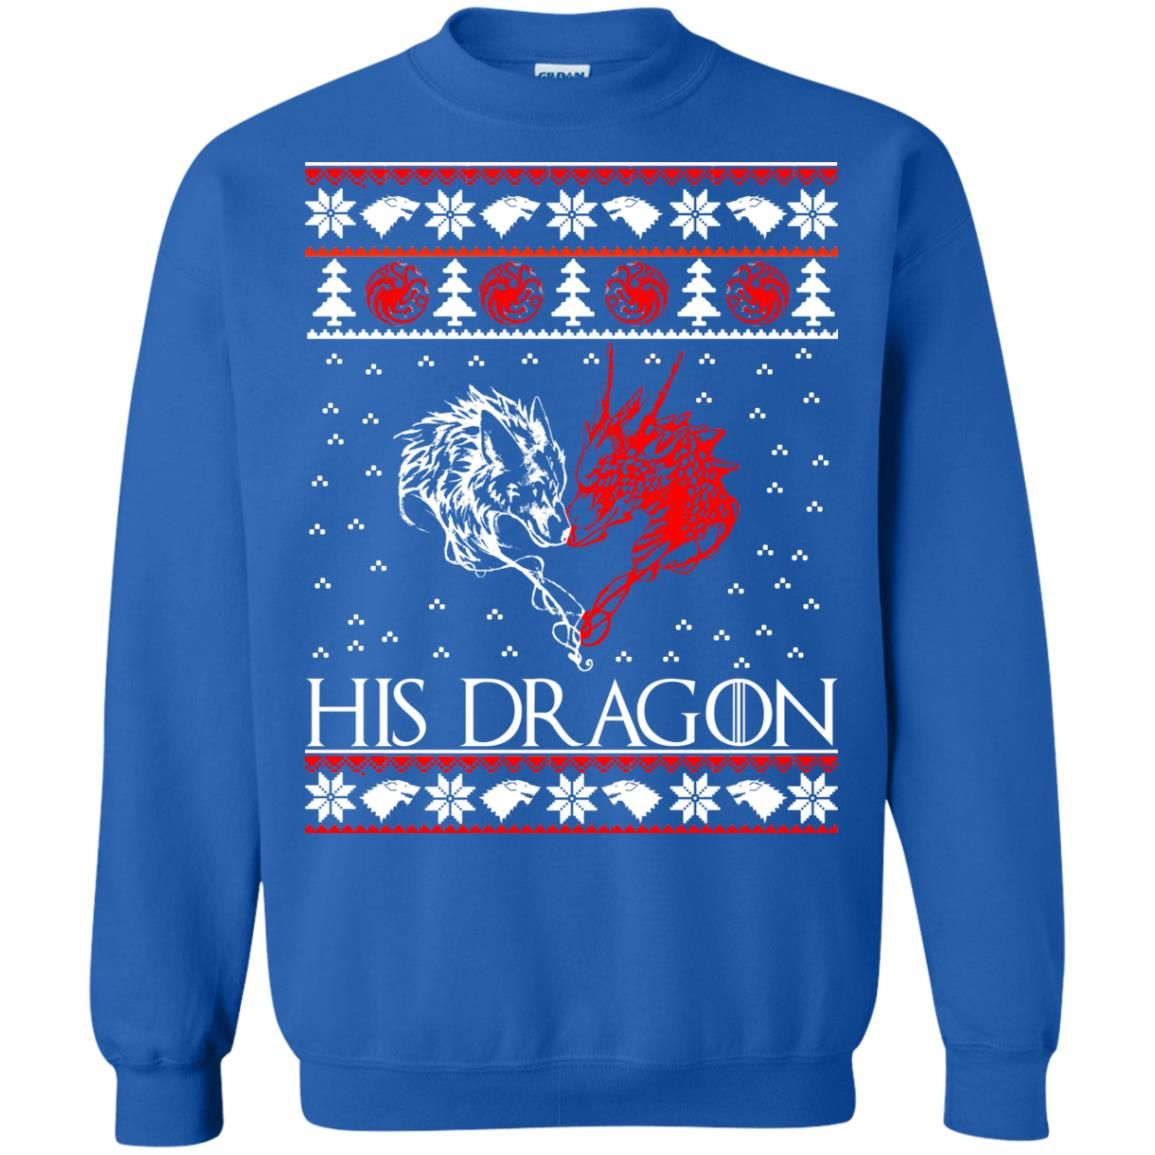 image 788 - Game of Thrones: His Dragon Ugly Christmas Sweatshirt, Hoodie